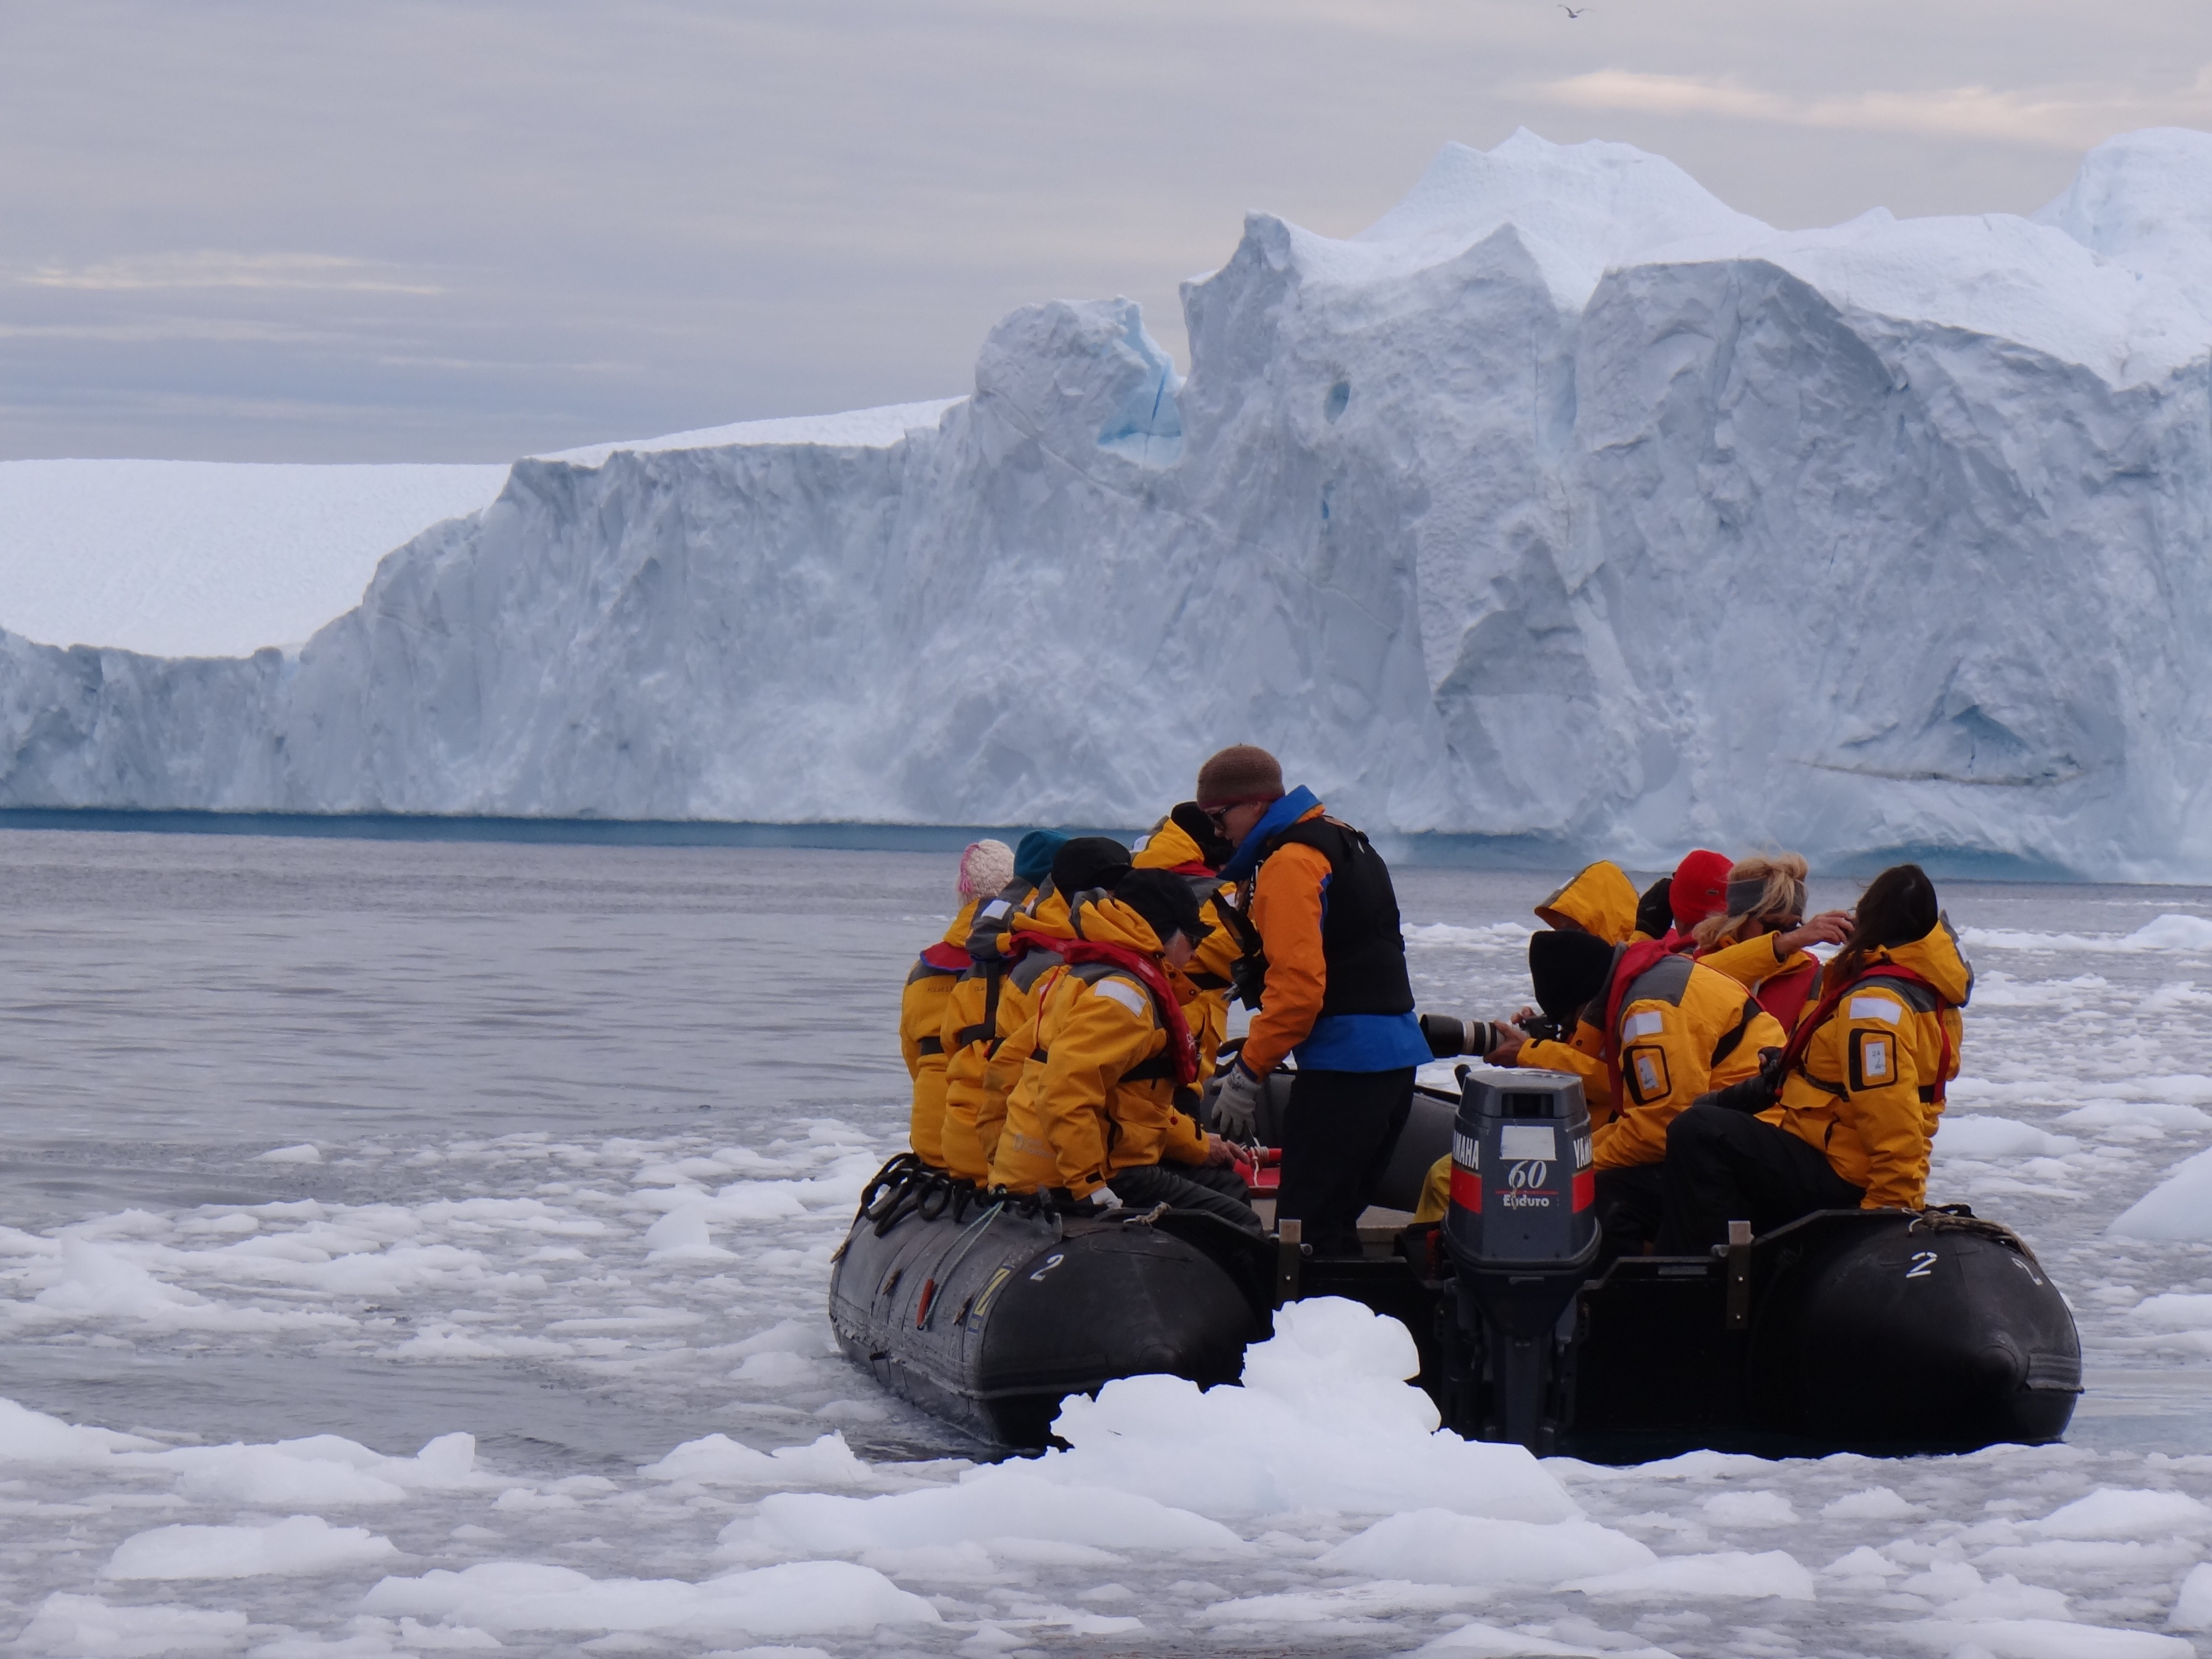 Riding zodiacs in the Arctic